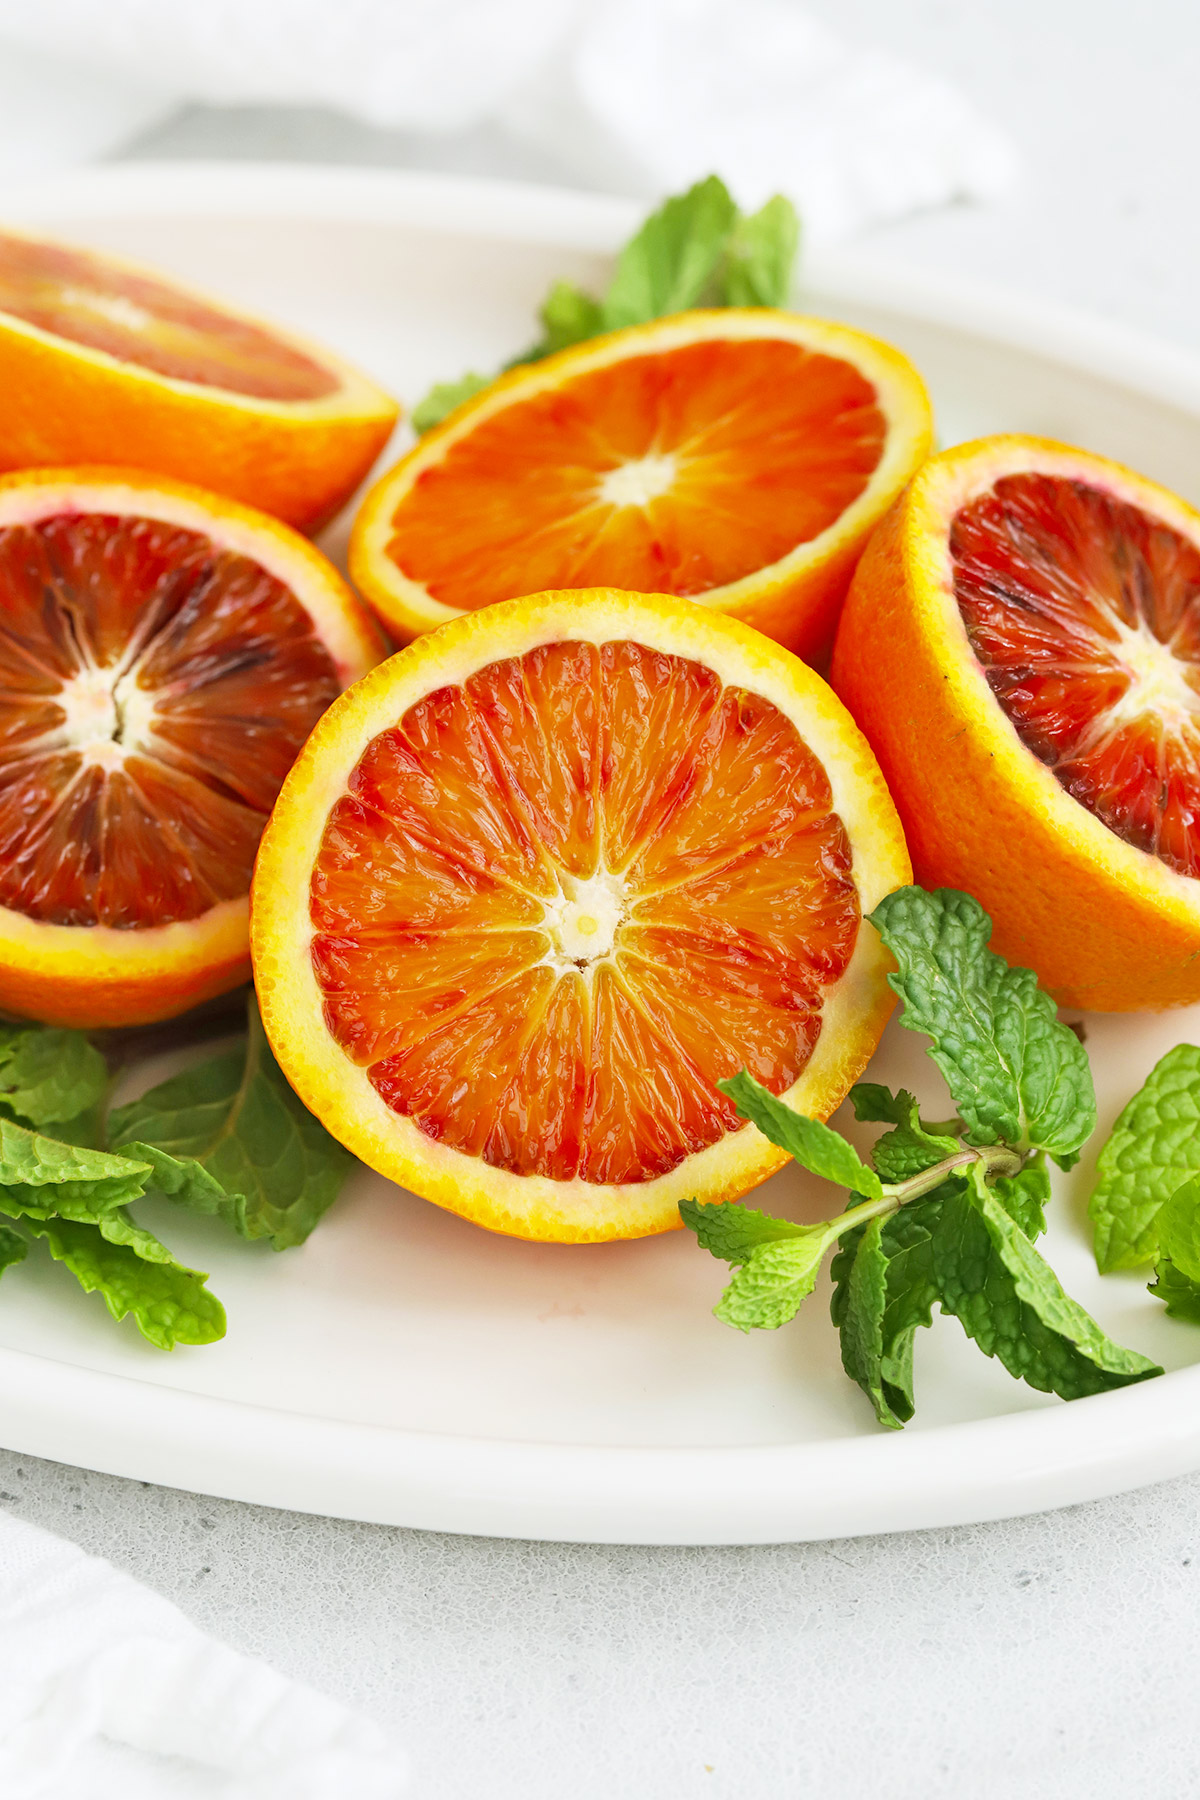 Halved blood oranges on a white platter with fresh mint